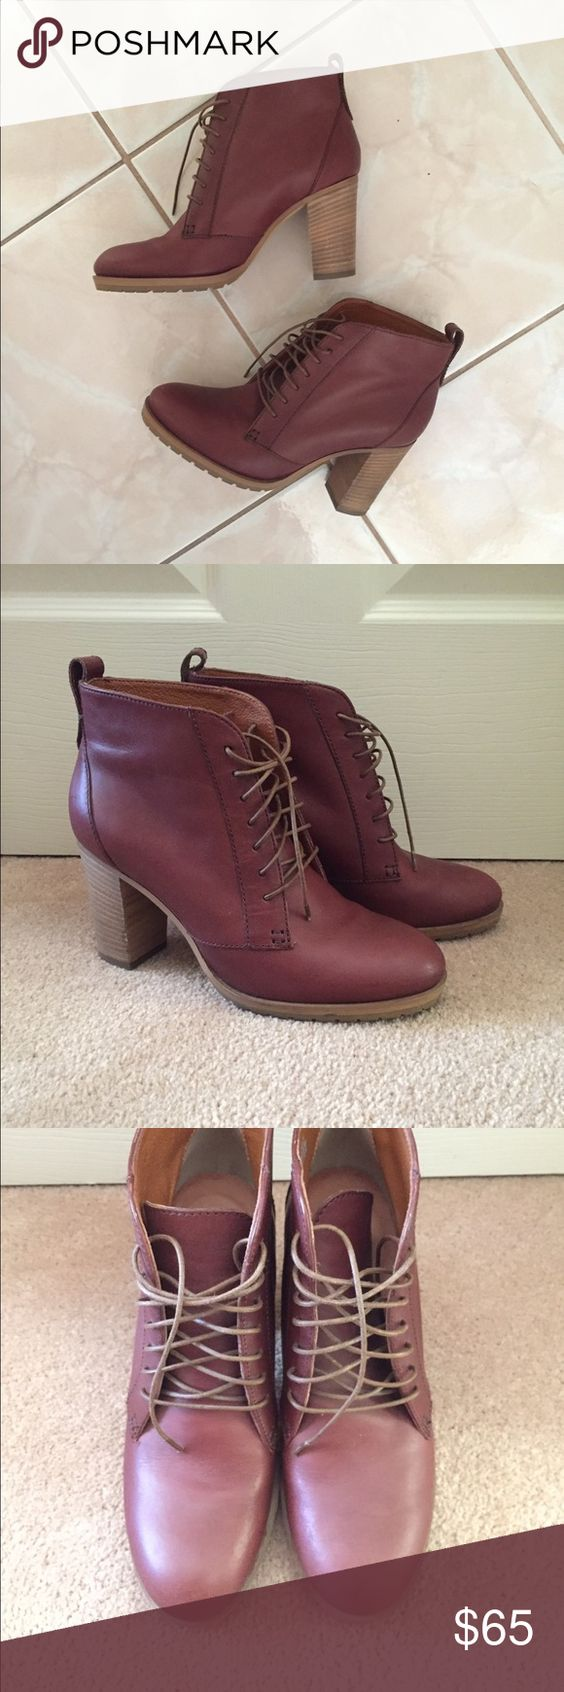 """Leather Madewell heeled lace-up ankle boots Super cute pair of lace up ankle booties from Madewell, in size 36. Made of real leather and in great condition, hardly worn. The heel is about 2.5"""" tall. The color is a reddish burgundy brown. Madewell Shoes Ankle Boots & Booties"""